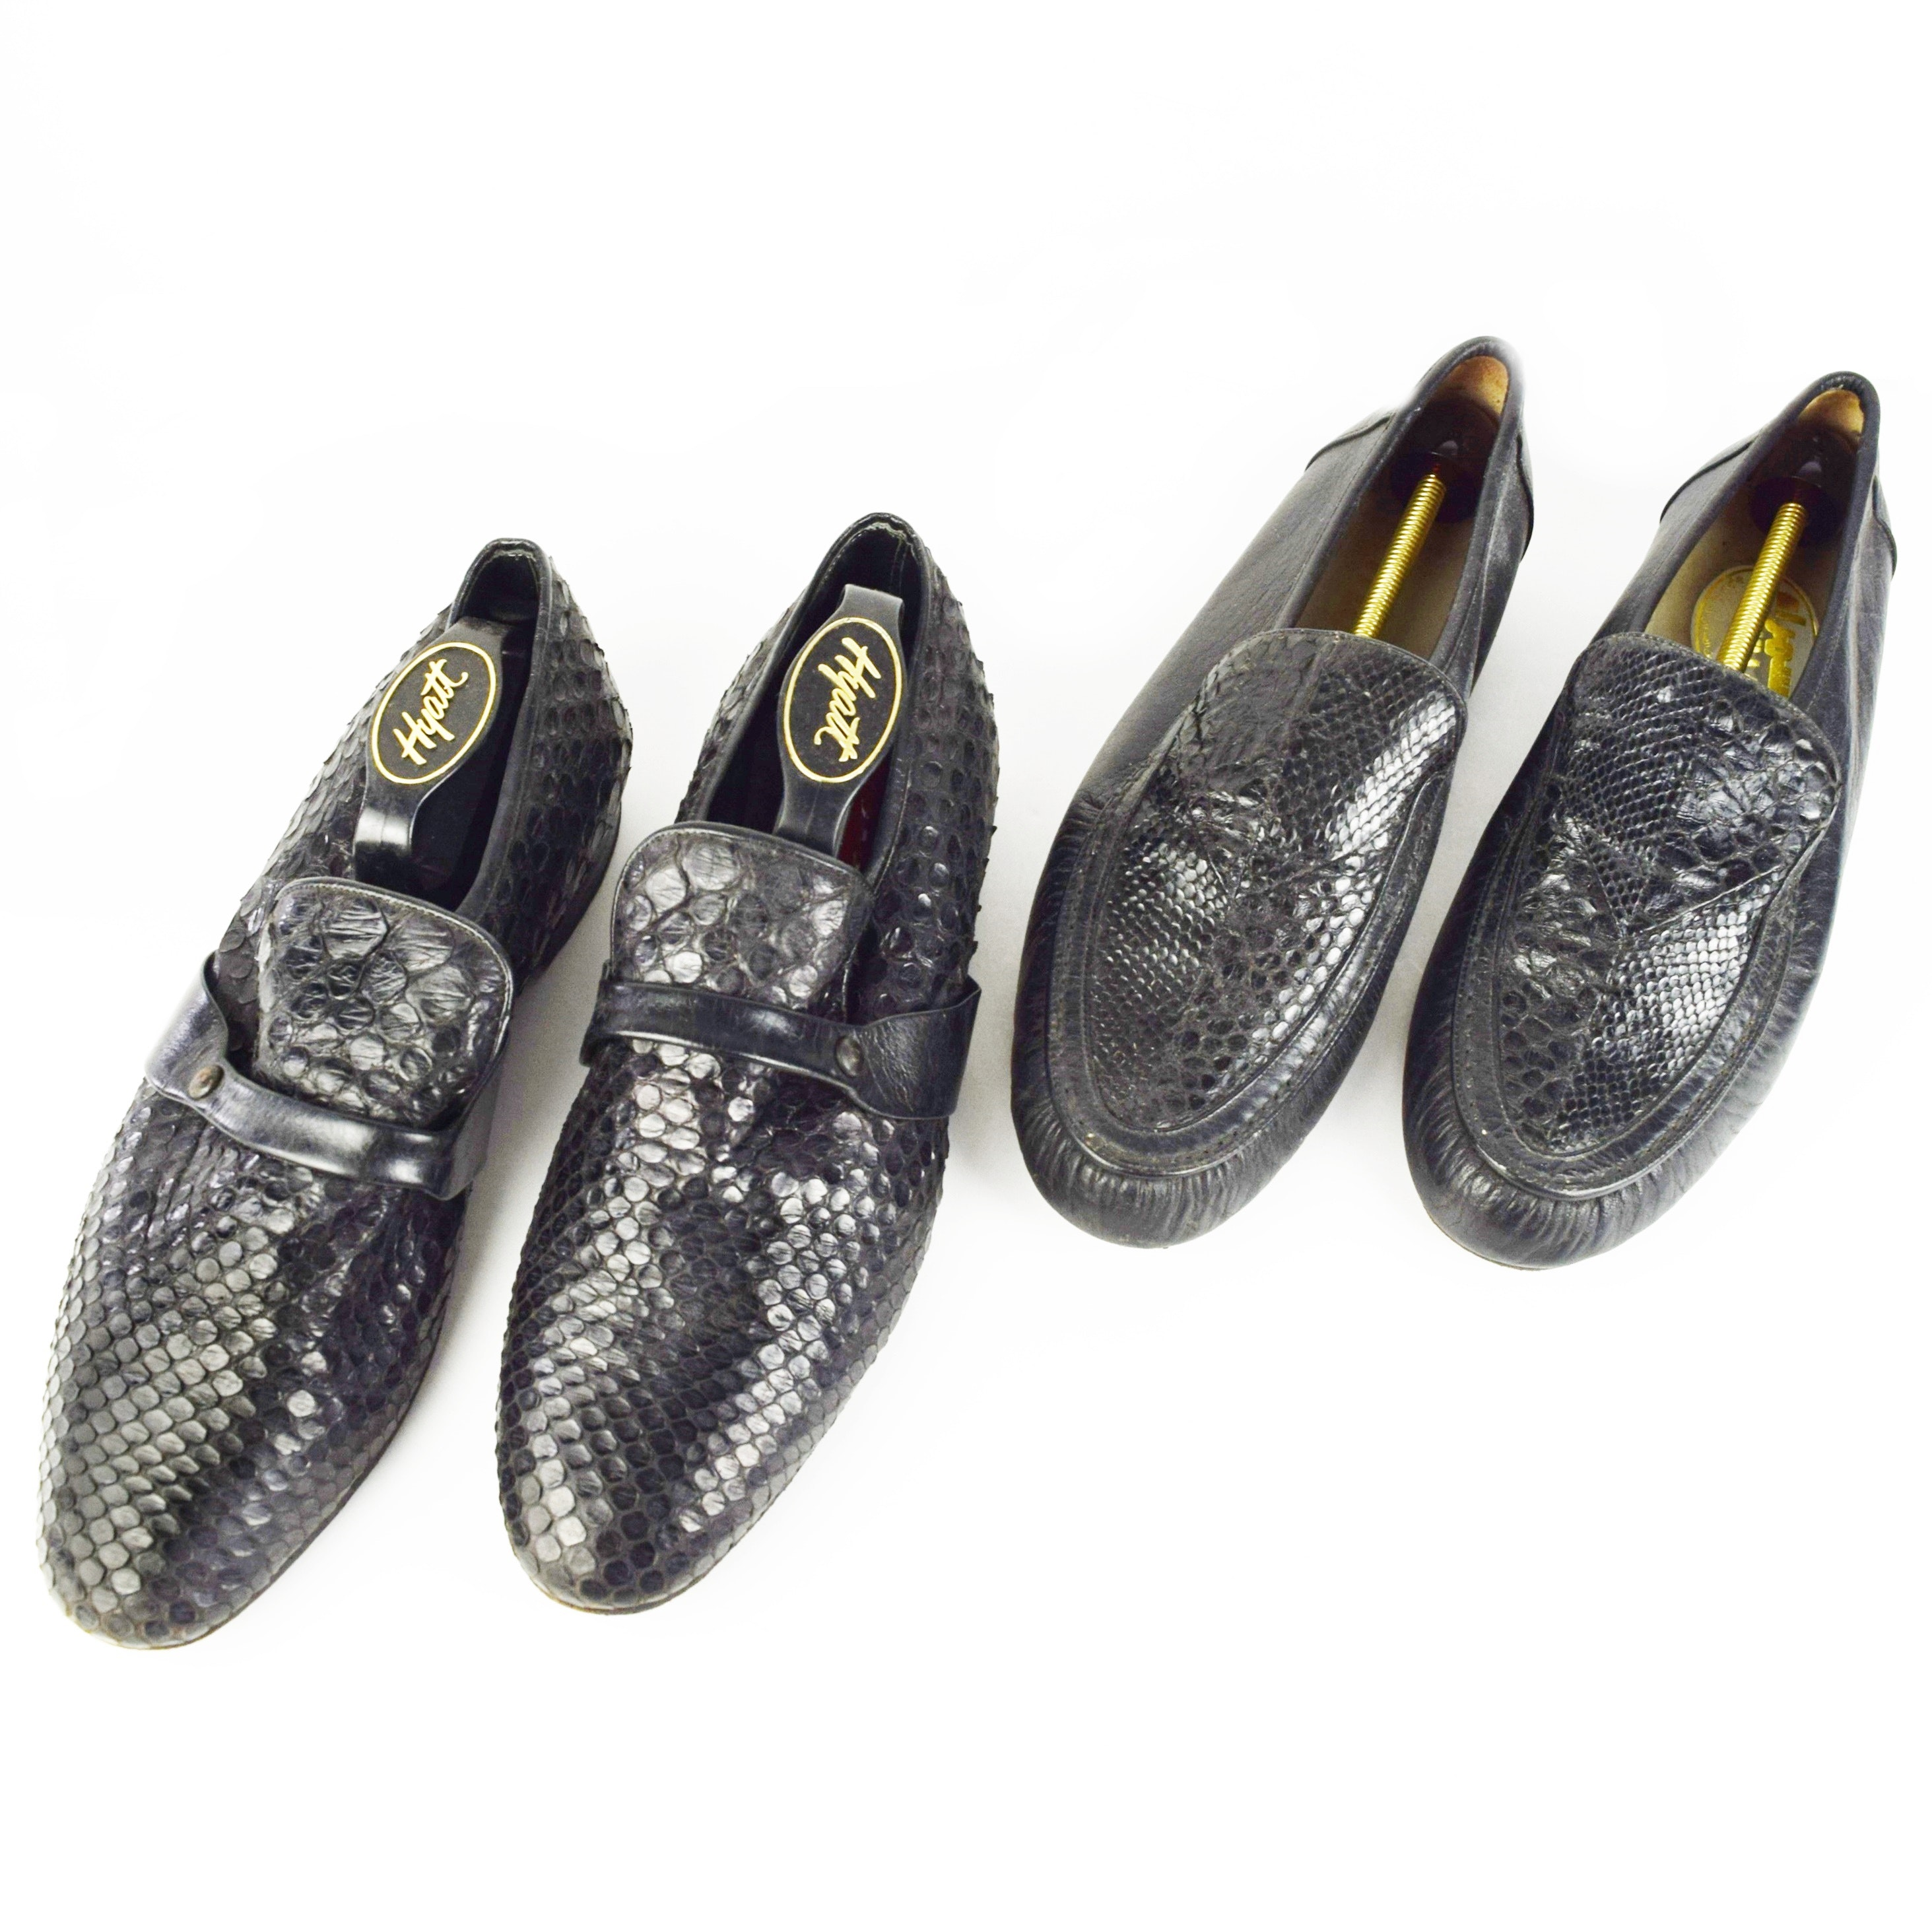 Two Pair of Mens Snakeskin Loafers, Made in Egypt, Size 43